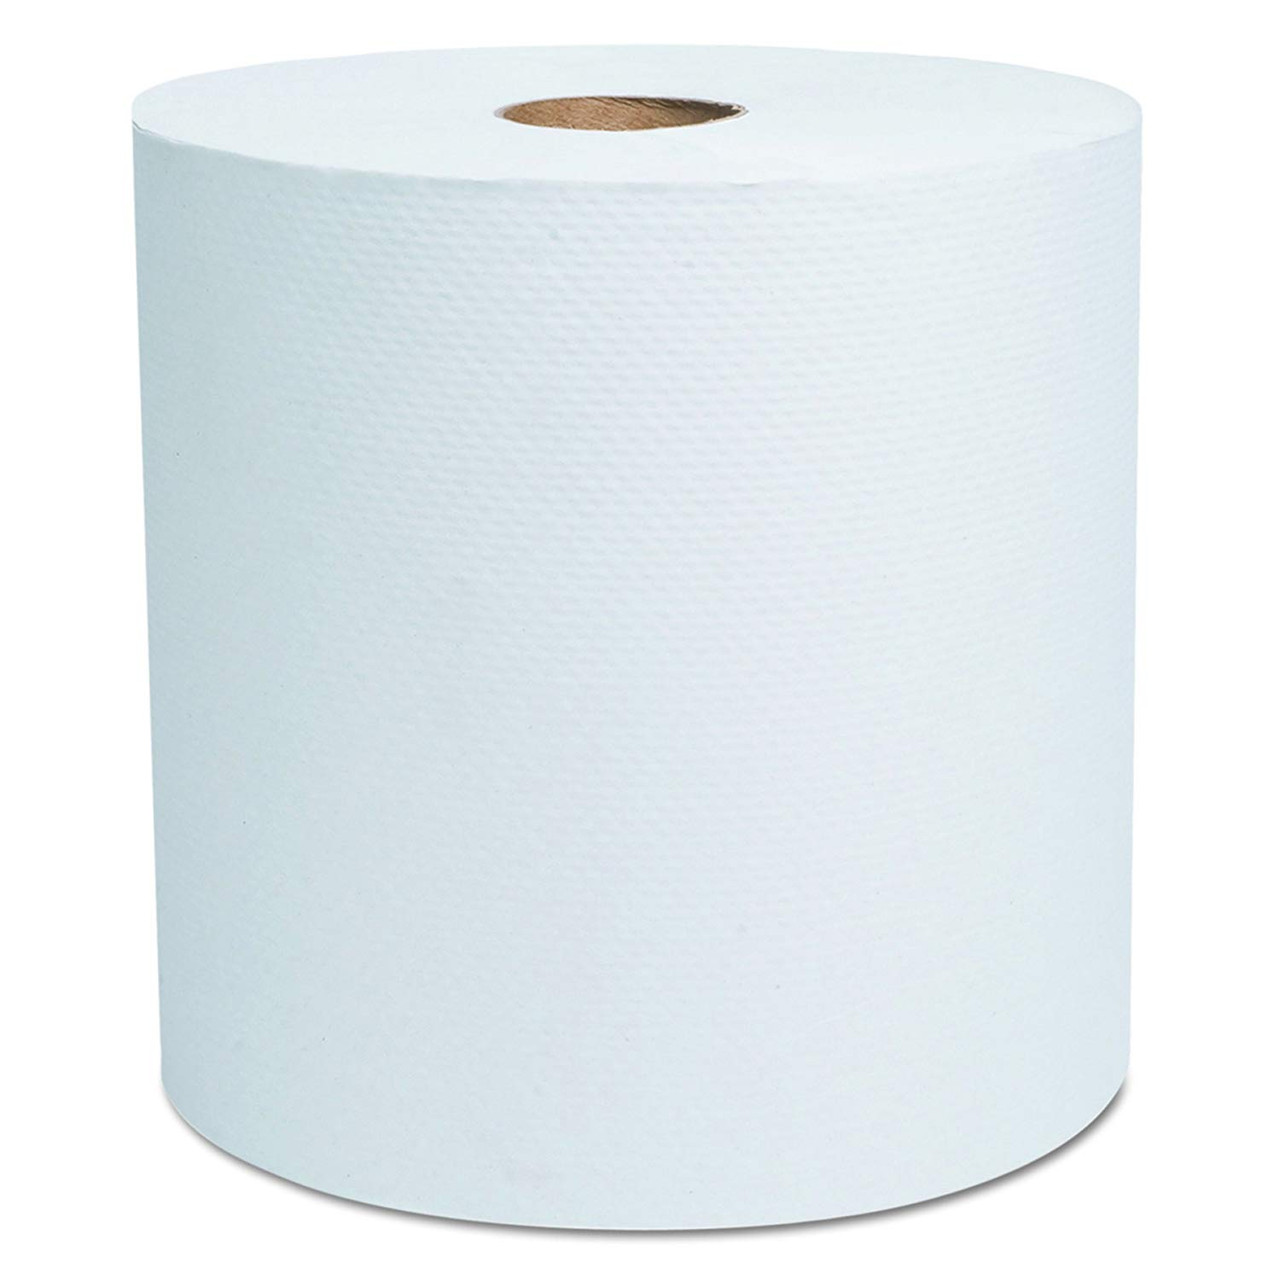 North River   Roll Towels   Brown Pallet